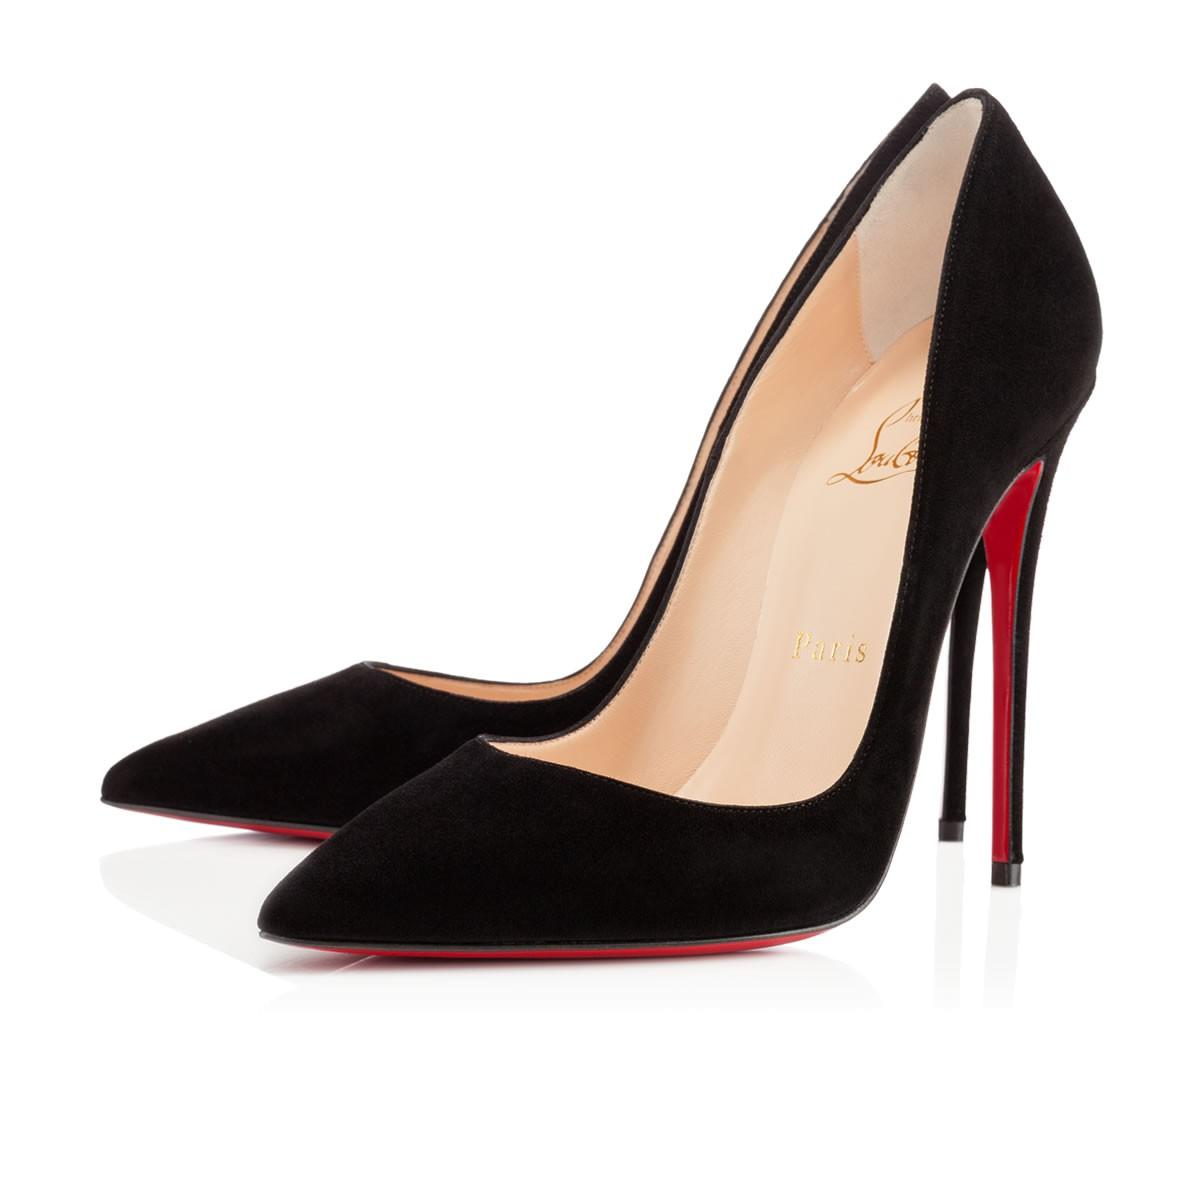 Christian Louboutin Shoes - Up to 70% off at Tradesy